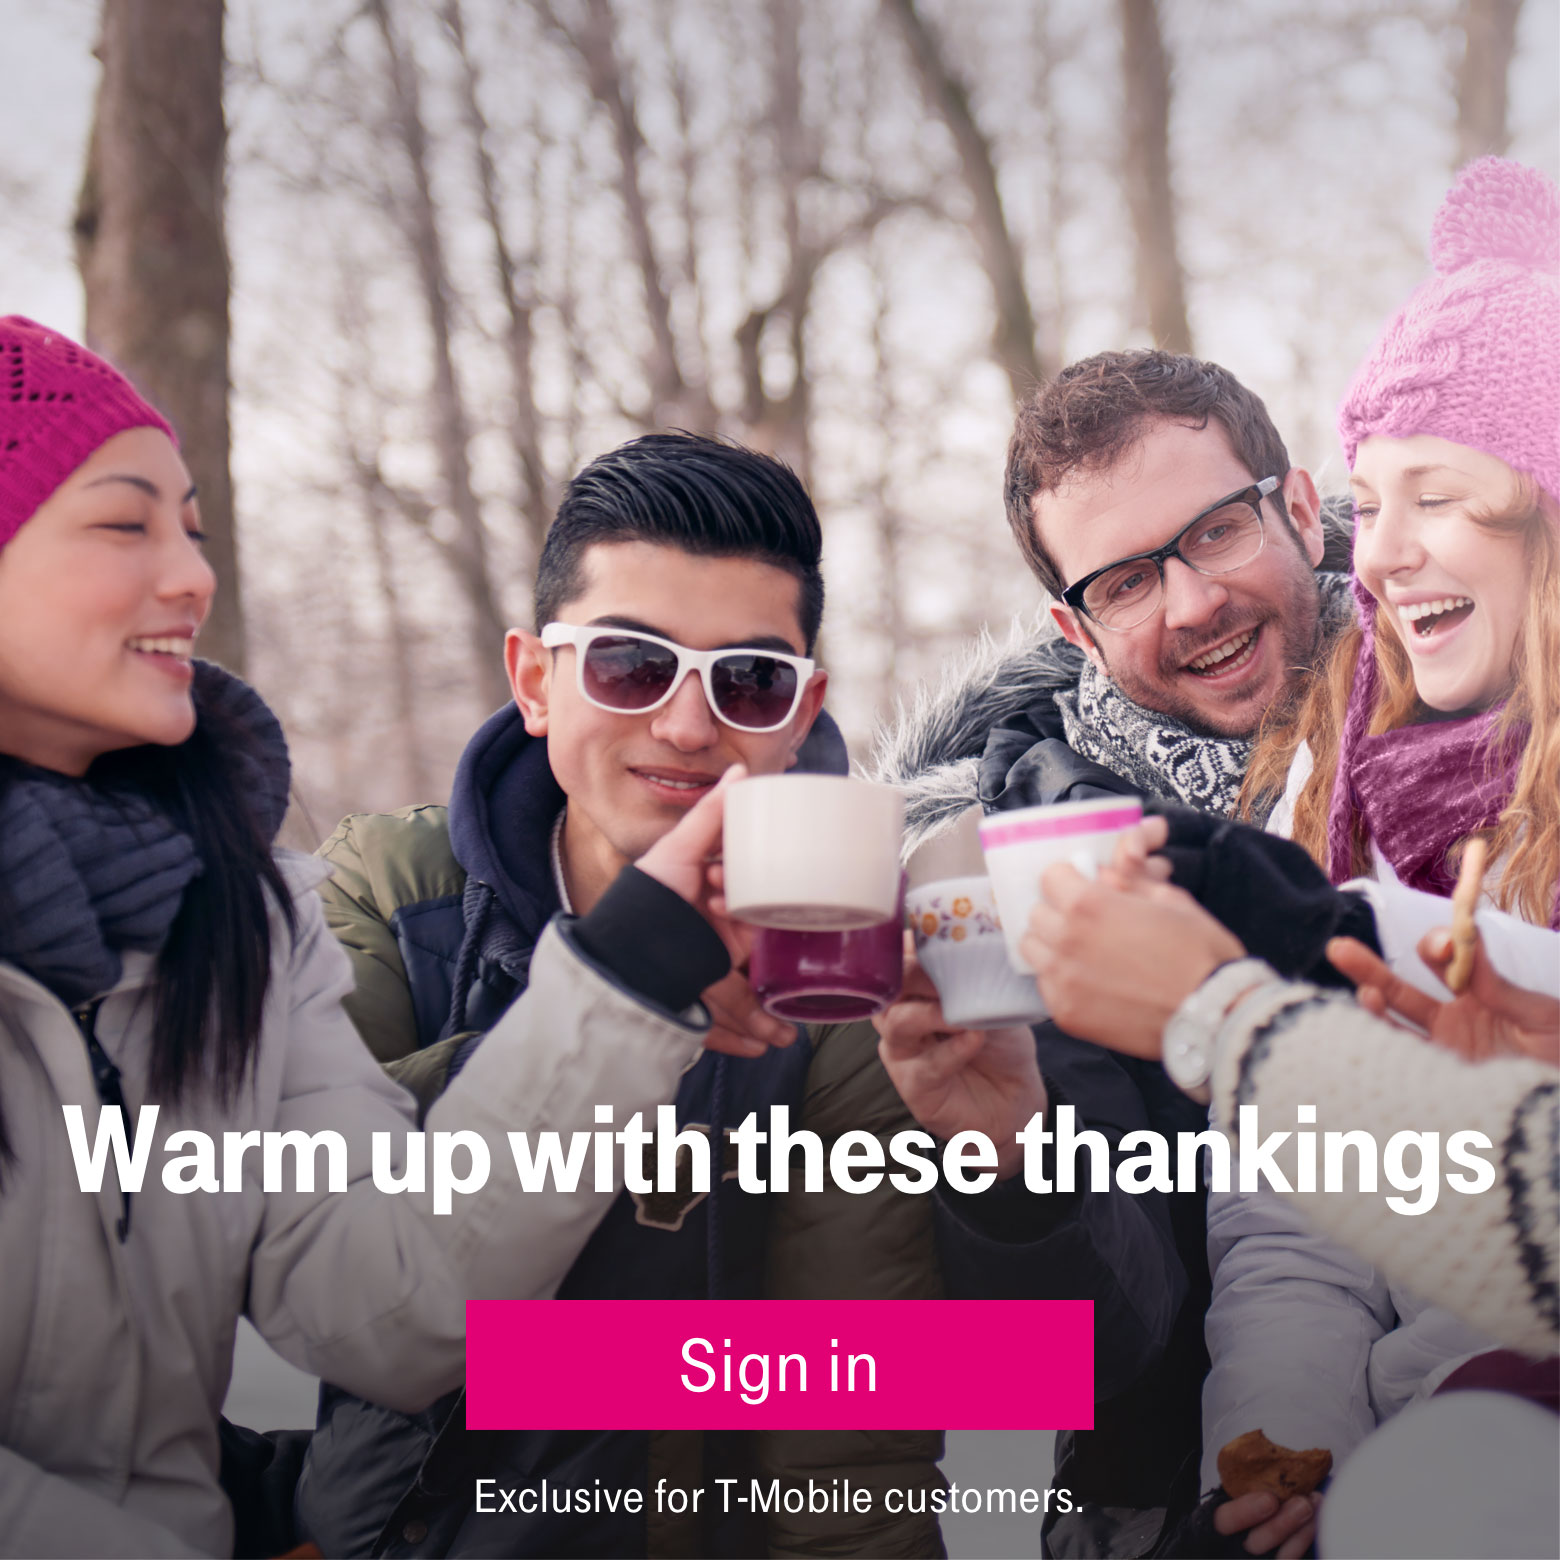 Warm up with these thankings. Sign in. Exclusive for T-Mobile customers.